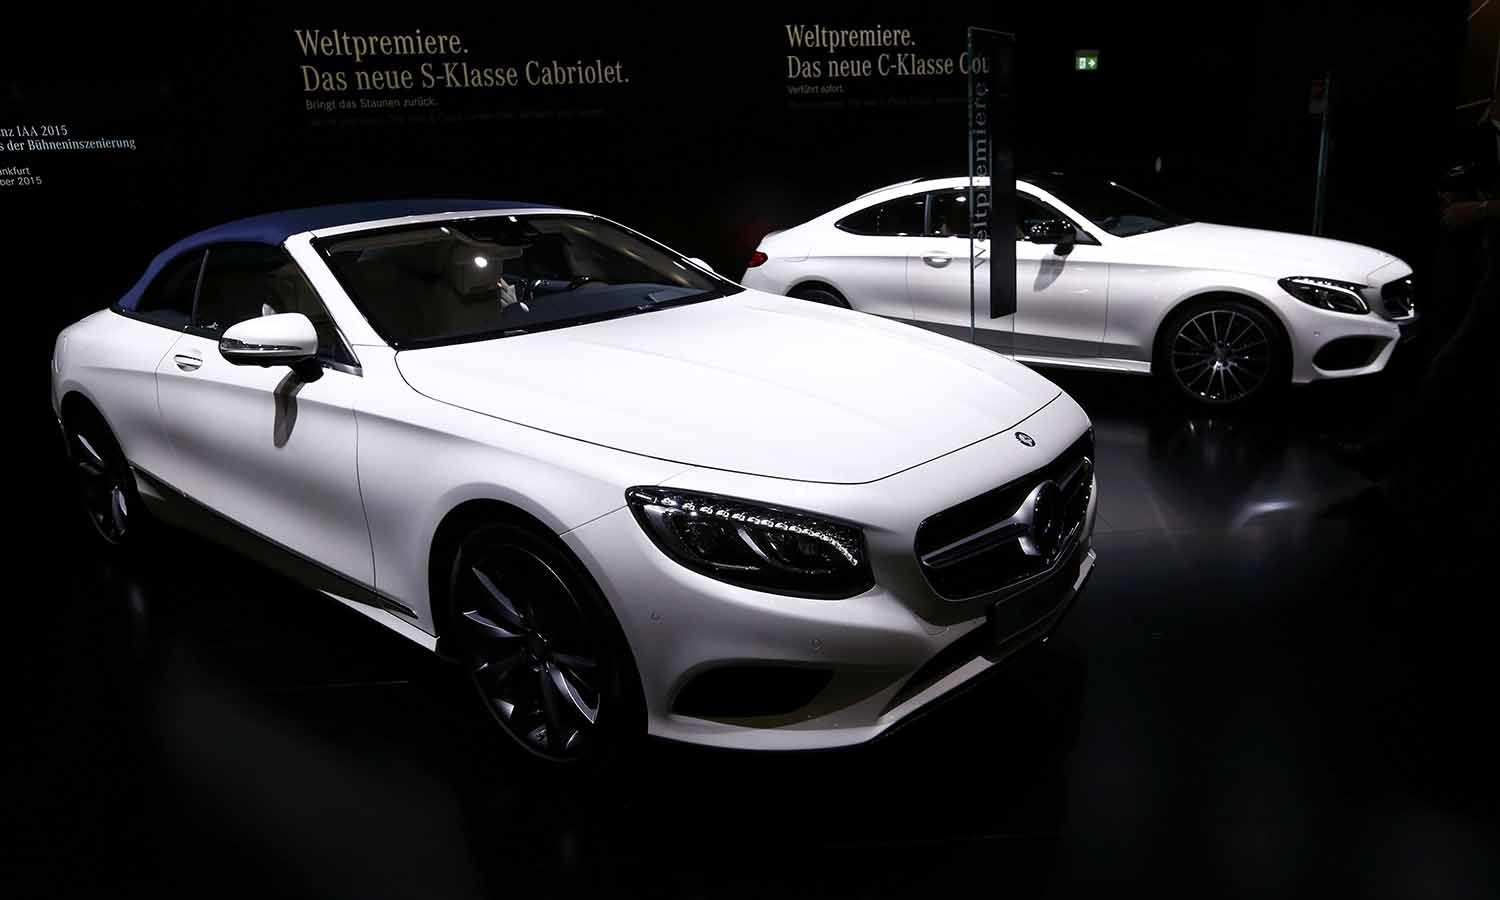 A new Mercedes-Benz S-Class S500 (L) convertible car is pictured at the booth of Mercedes-Benz during the media day at the car show. ─ Reuters